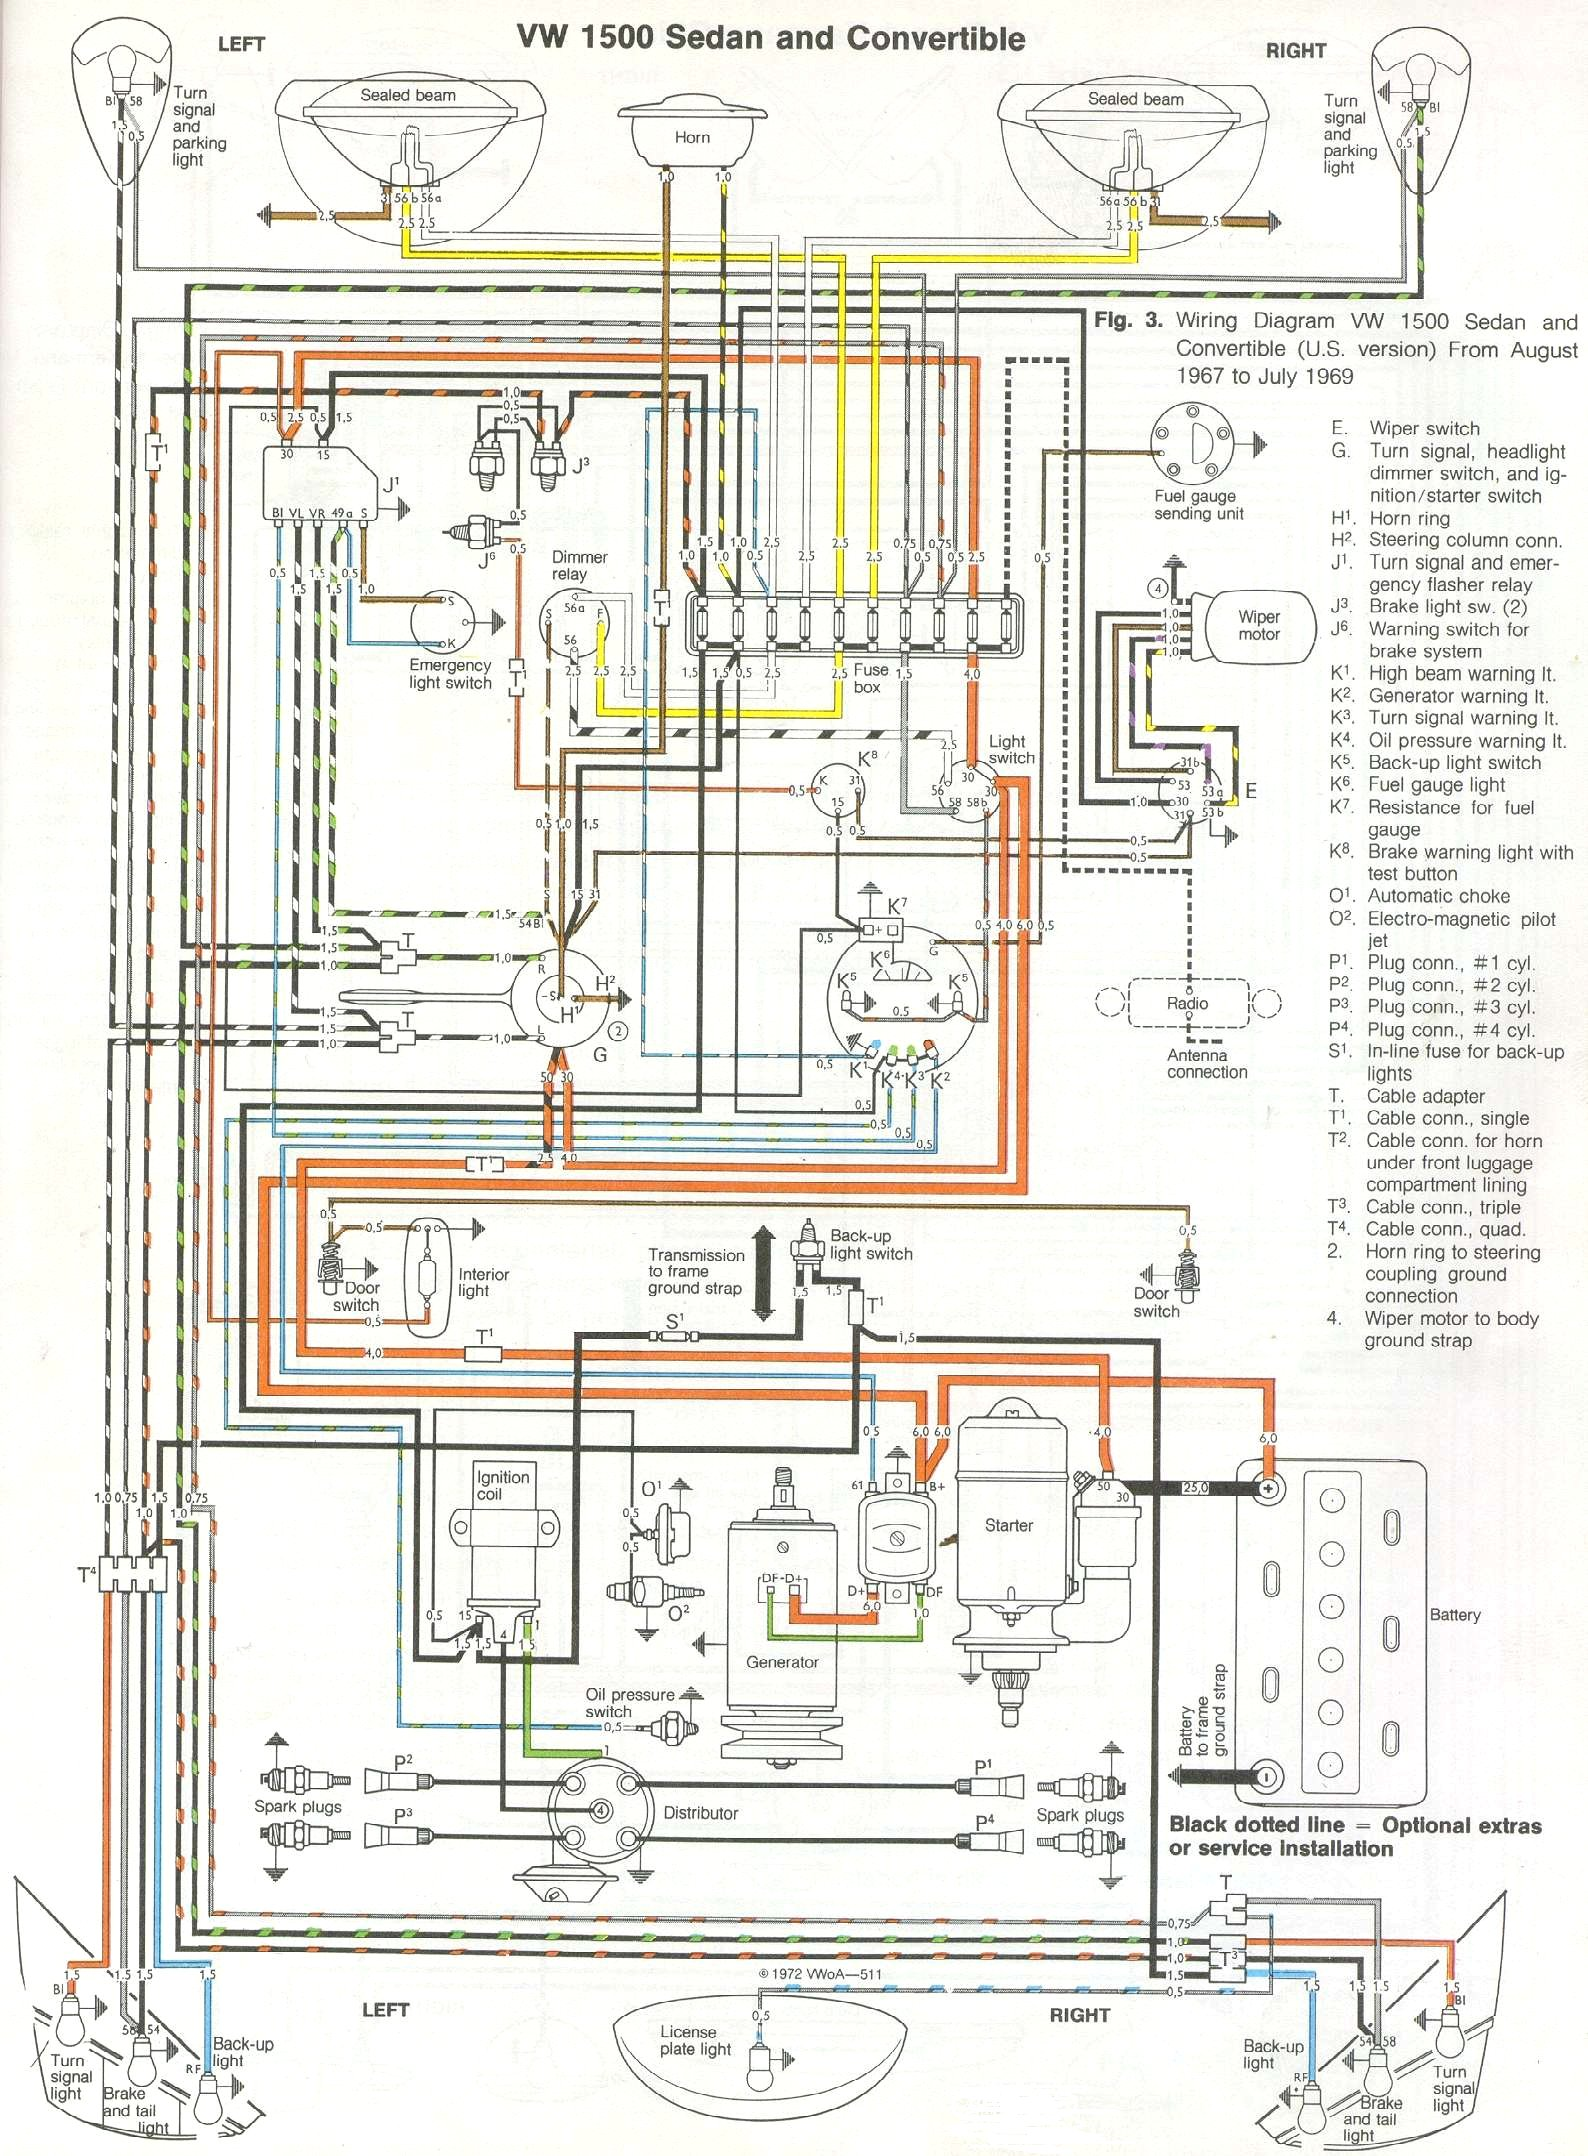 bug_6869 www thegoldenbug com images wiring bug_6869 jpg 1968 vw type 3 wiring diagram at gsmx.co